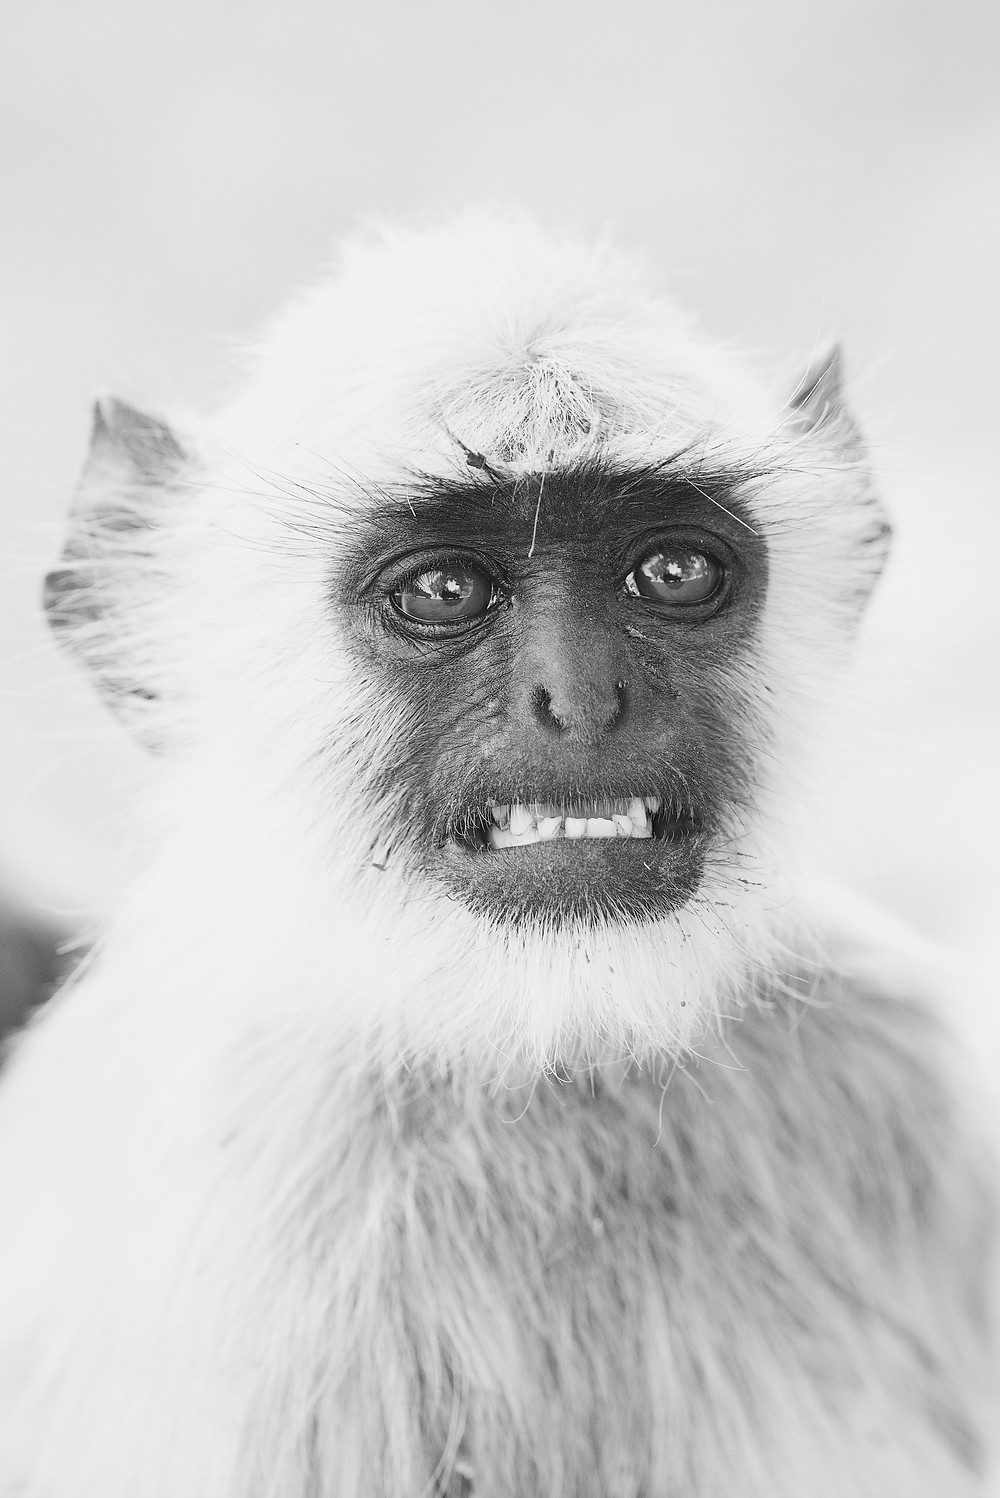 A picture of a monkey.